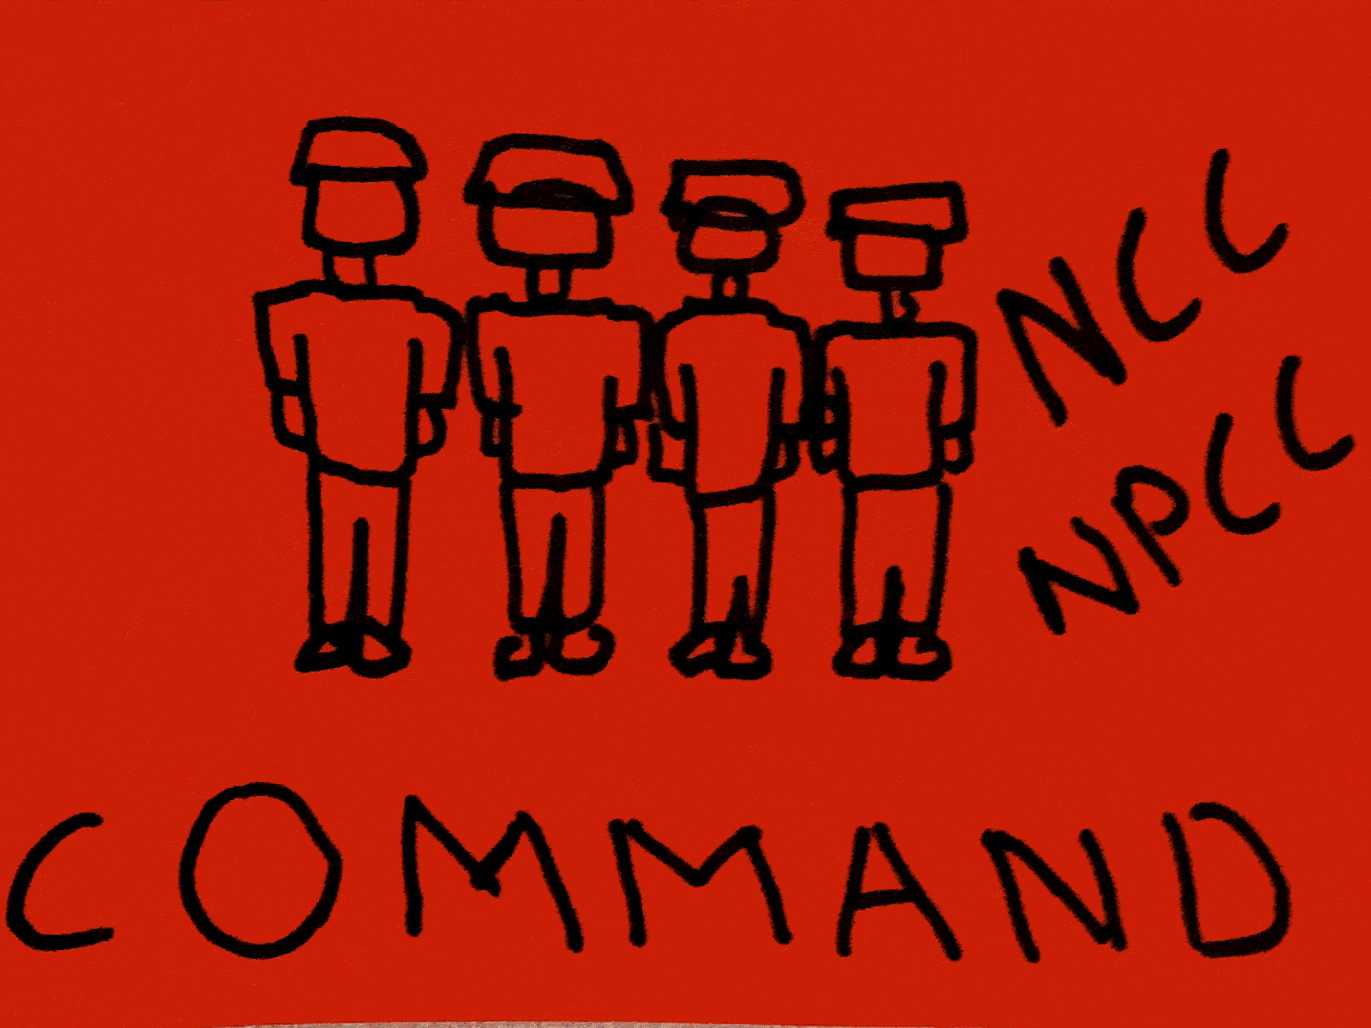 Command StrengthsFinder Singapore Soldiers Army